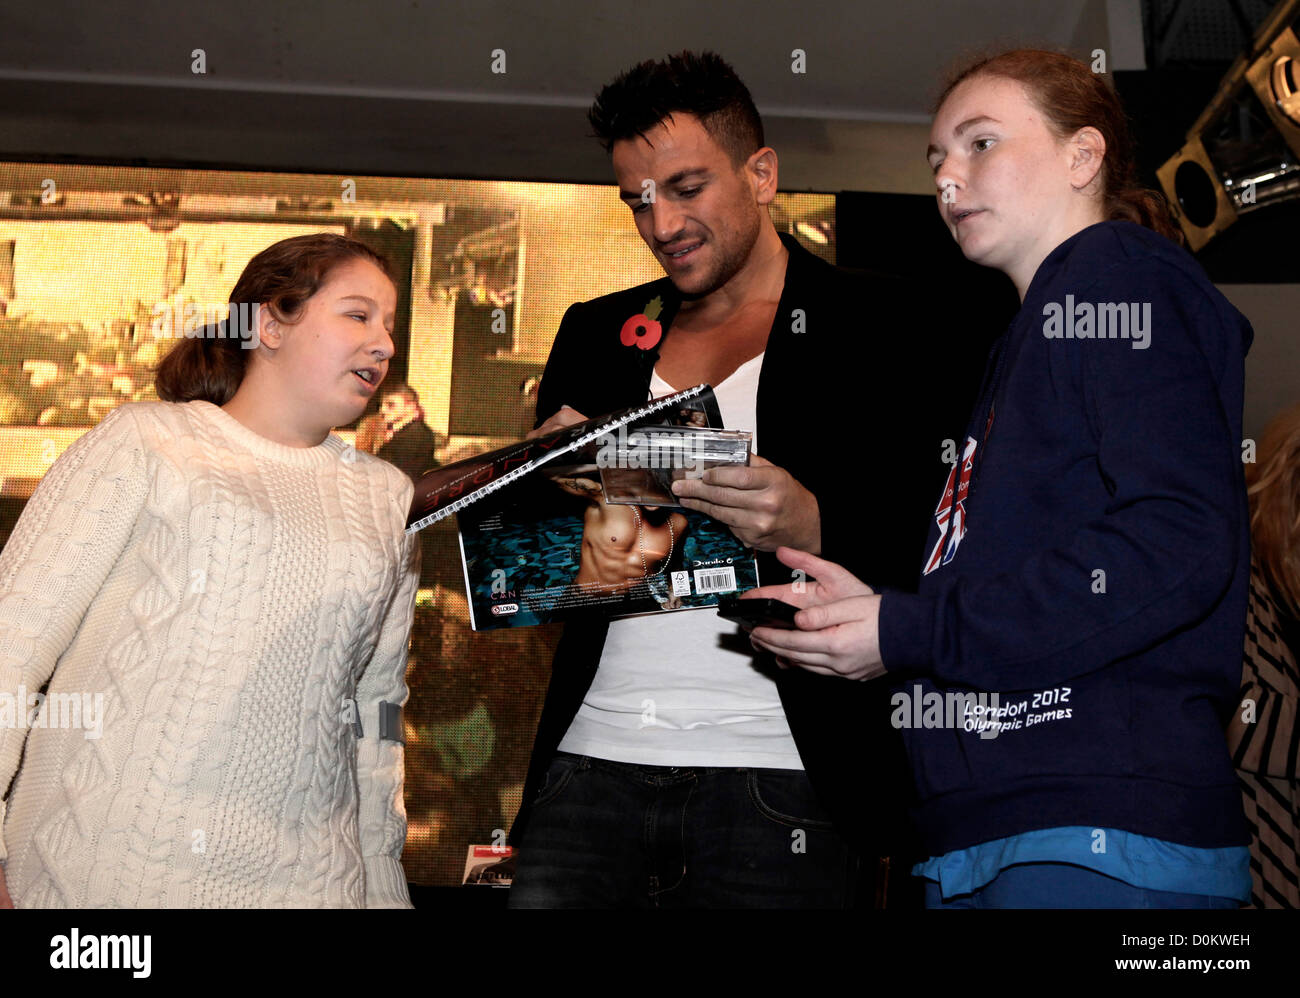 Peter Andre signs copies of his new album Angels & Demons for fans in HMV store on Oxford Street, London - Stock Image